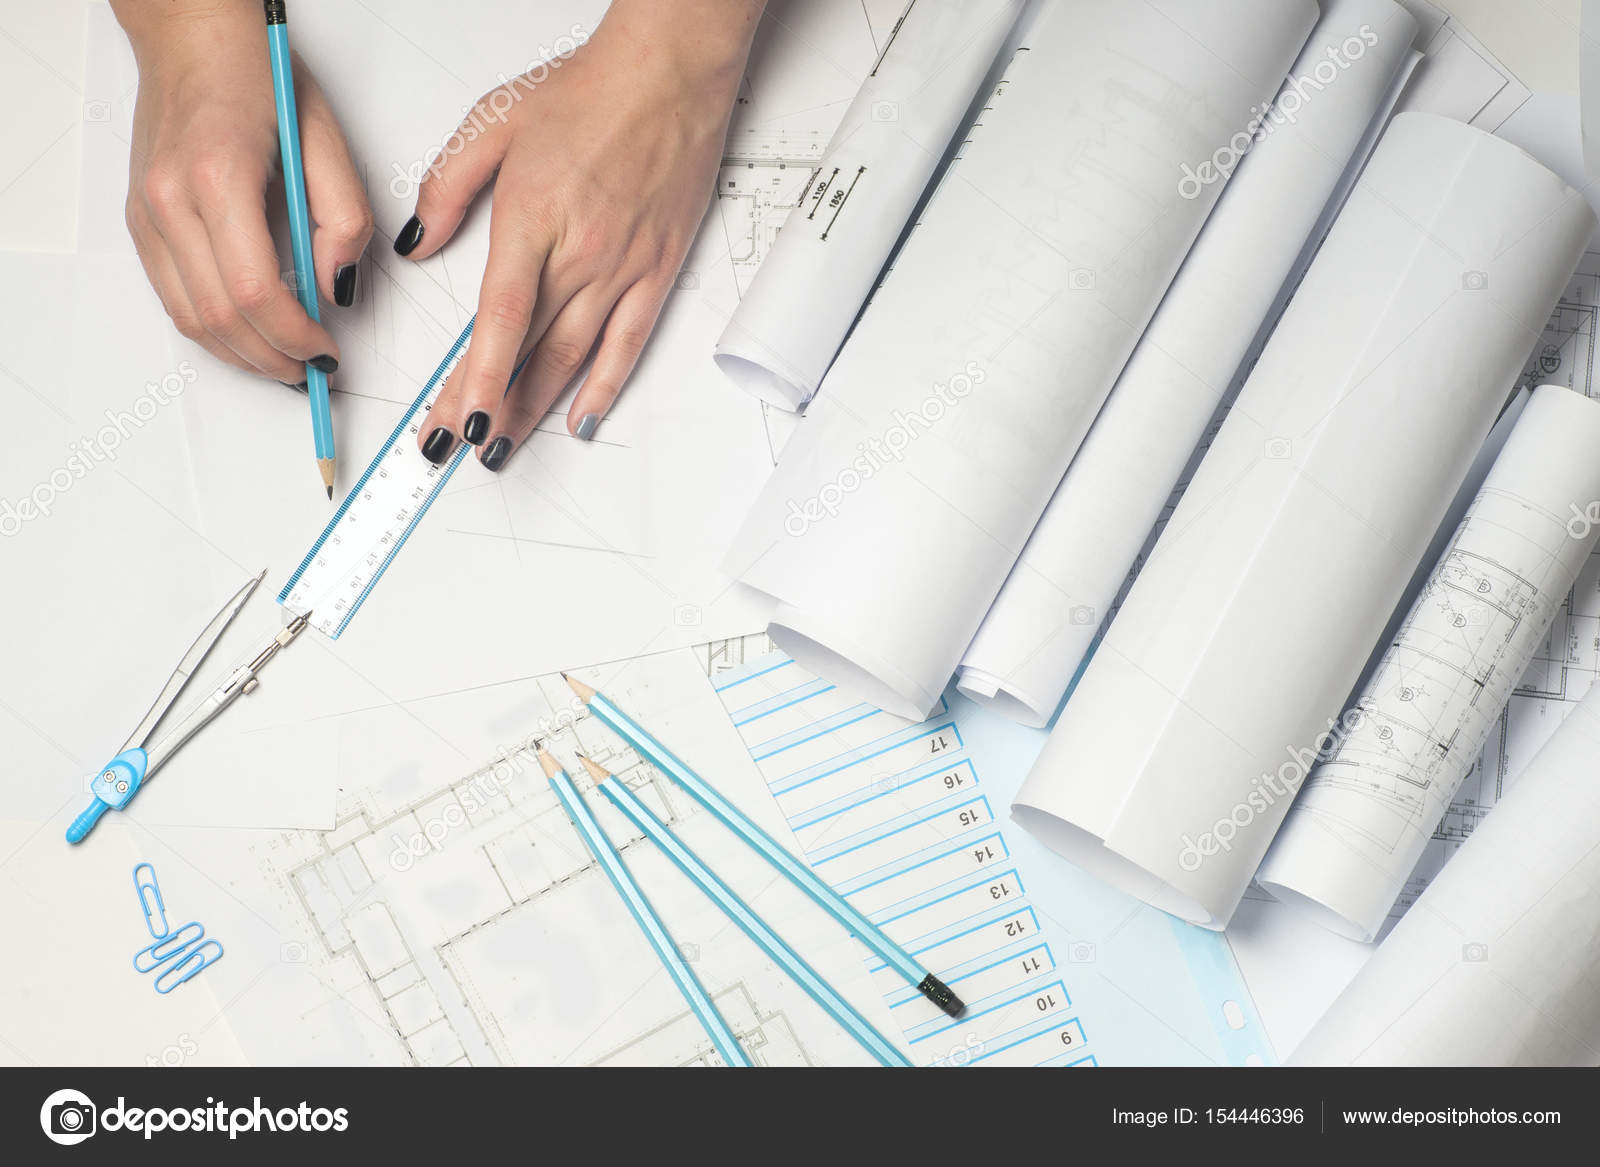 Architect working on blueprint stock photo vtmila 154446396 architects workplace architectural project blueprints ruler and divider compass construction concept engineering tools top view photo by vtmila malvernweather Image collections